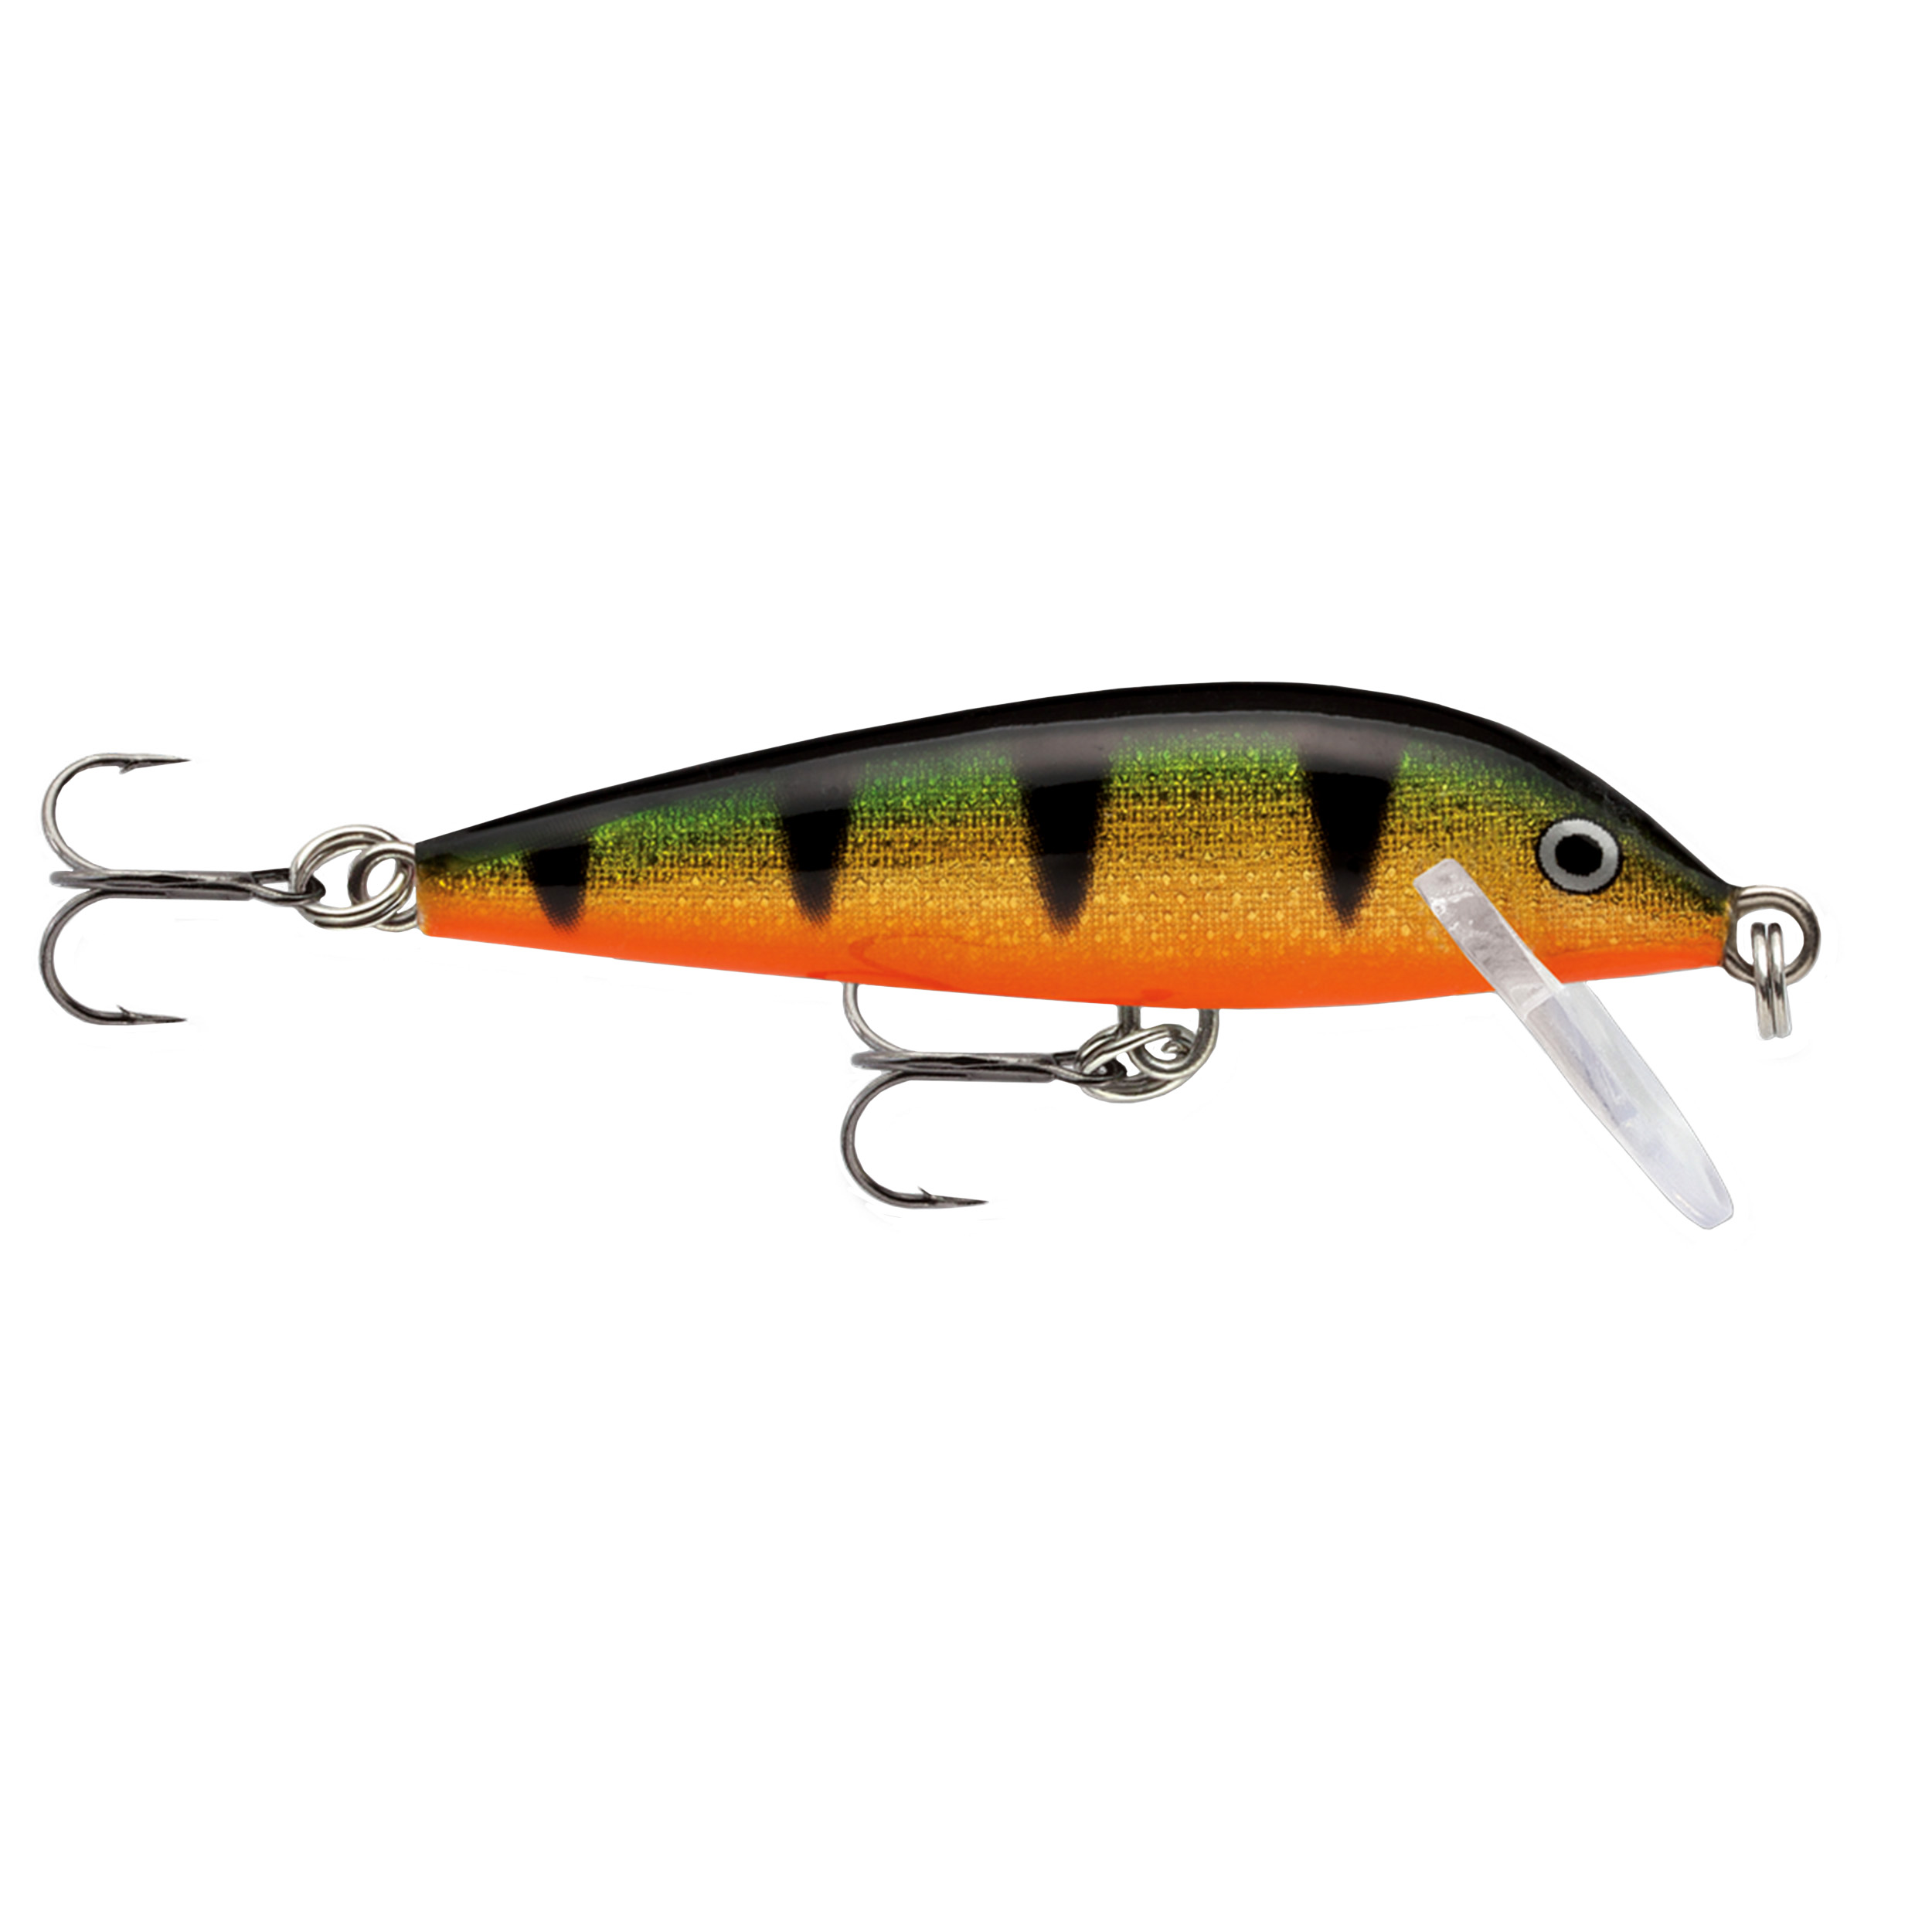 """Rapala CountDown Lure Size 03, 1 1 2"""" Length, 2'-3' Depth, 2 Number 12 Hooks, Fire Tiger, Per 1 by Rapala"""